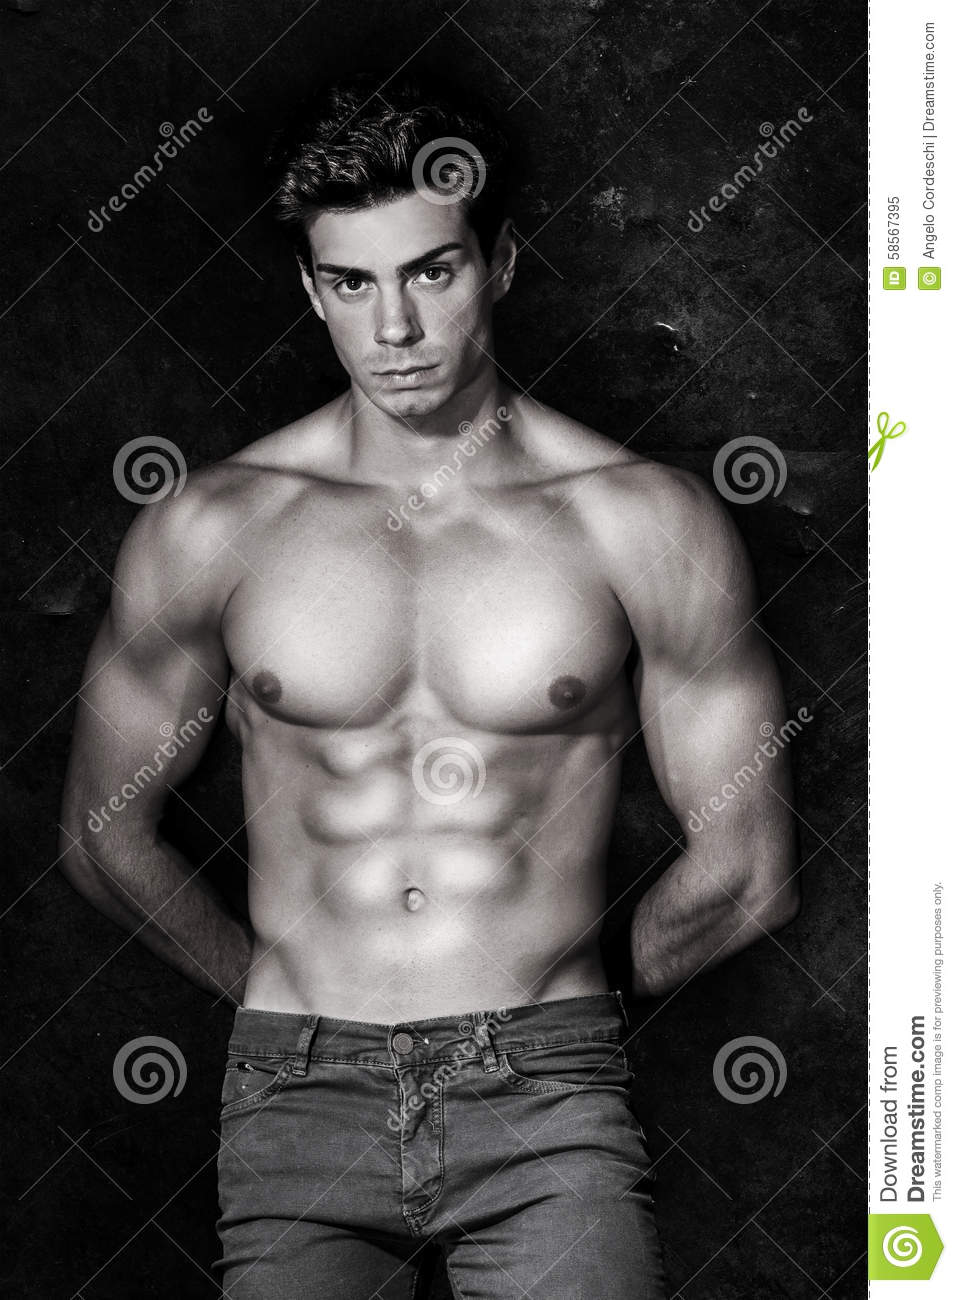 Muscular nude male models